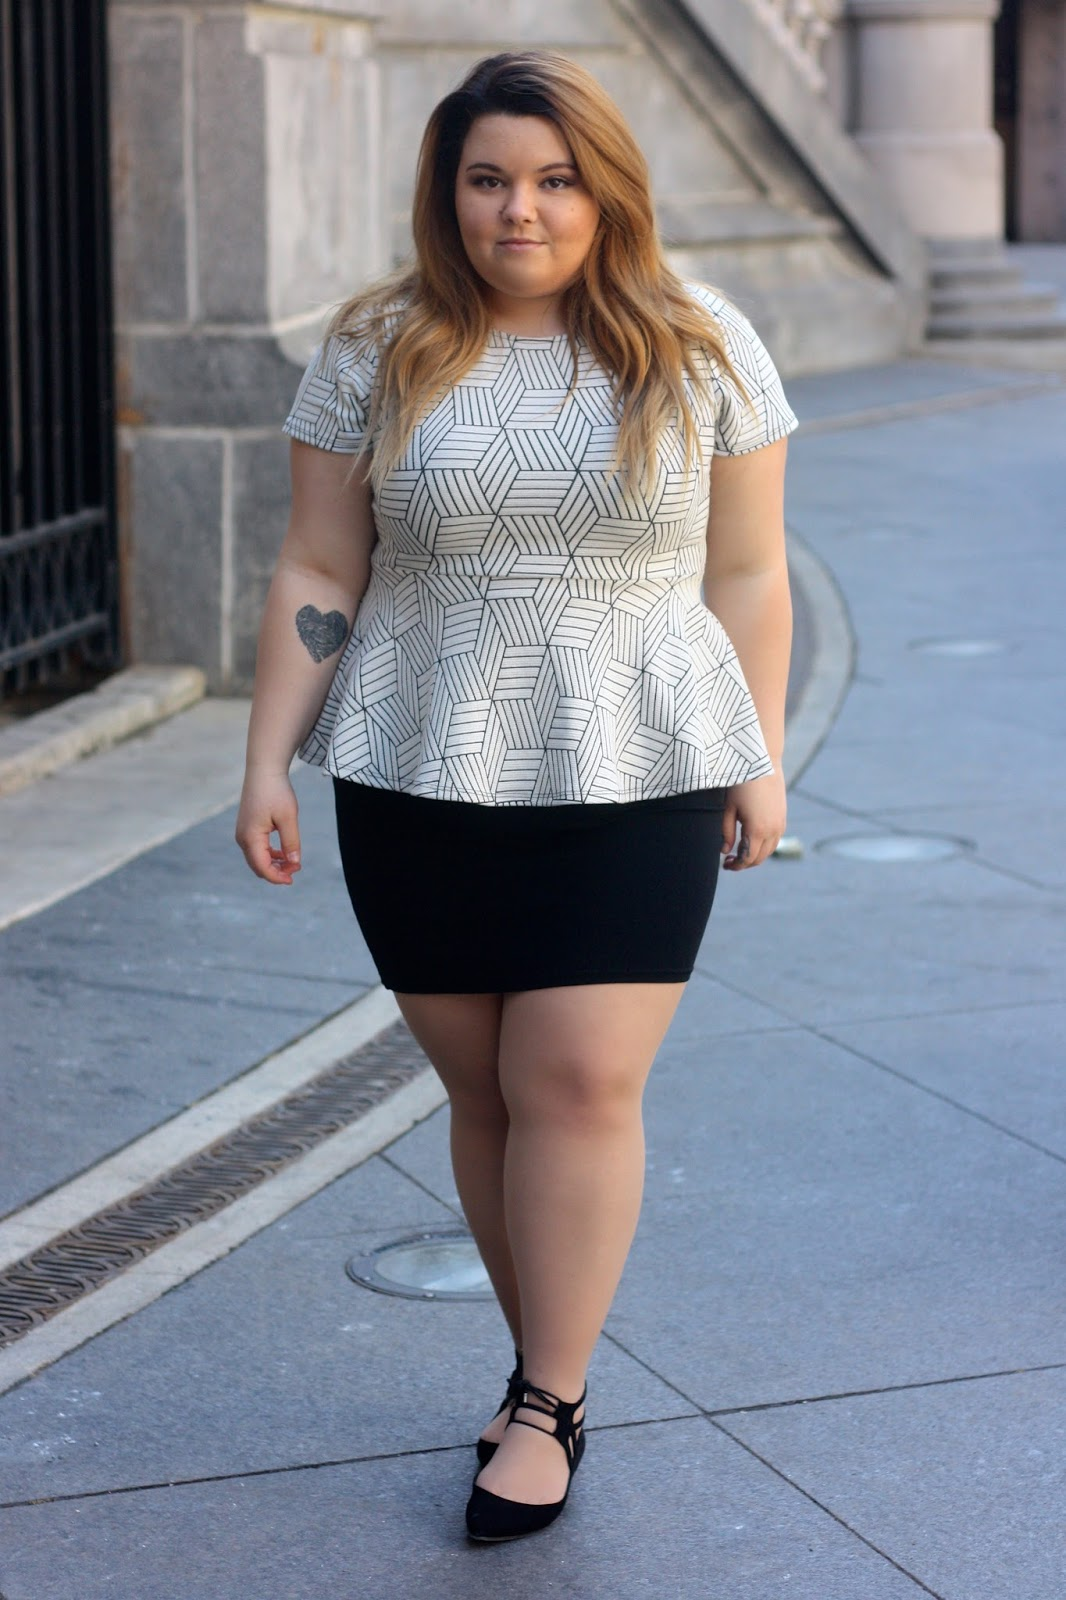 plus size, peplum top, plus size fashion, natalie craig, natalie in the city, chicago, river walk, black pencil skirts, plus size office attire, ballet flats, nine west